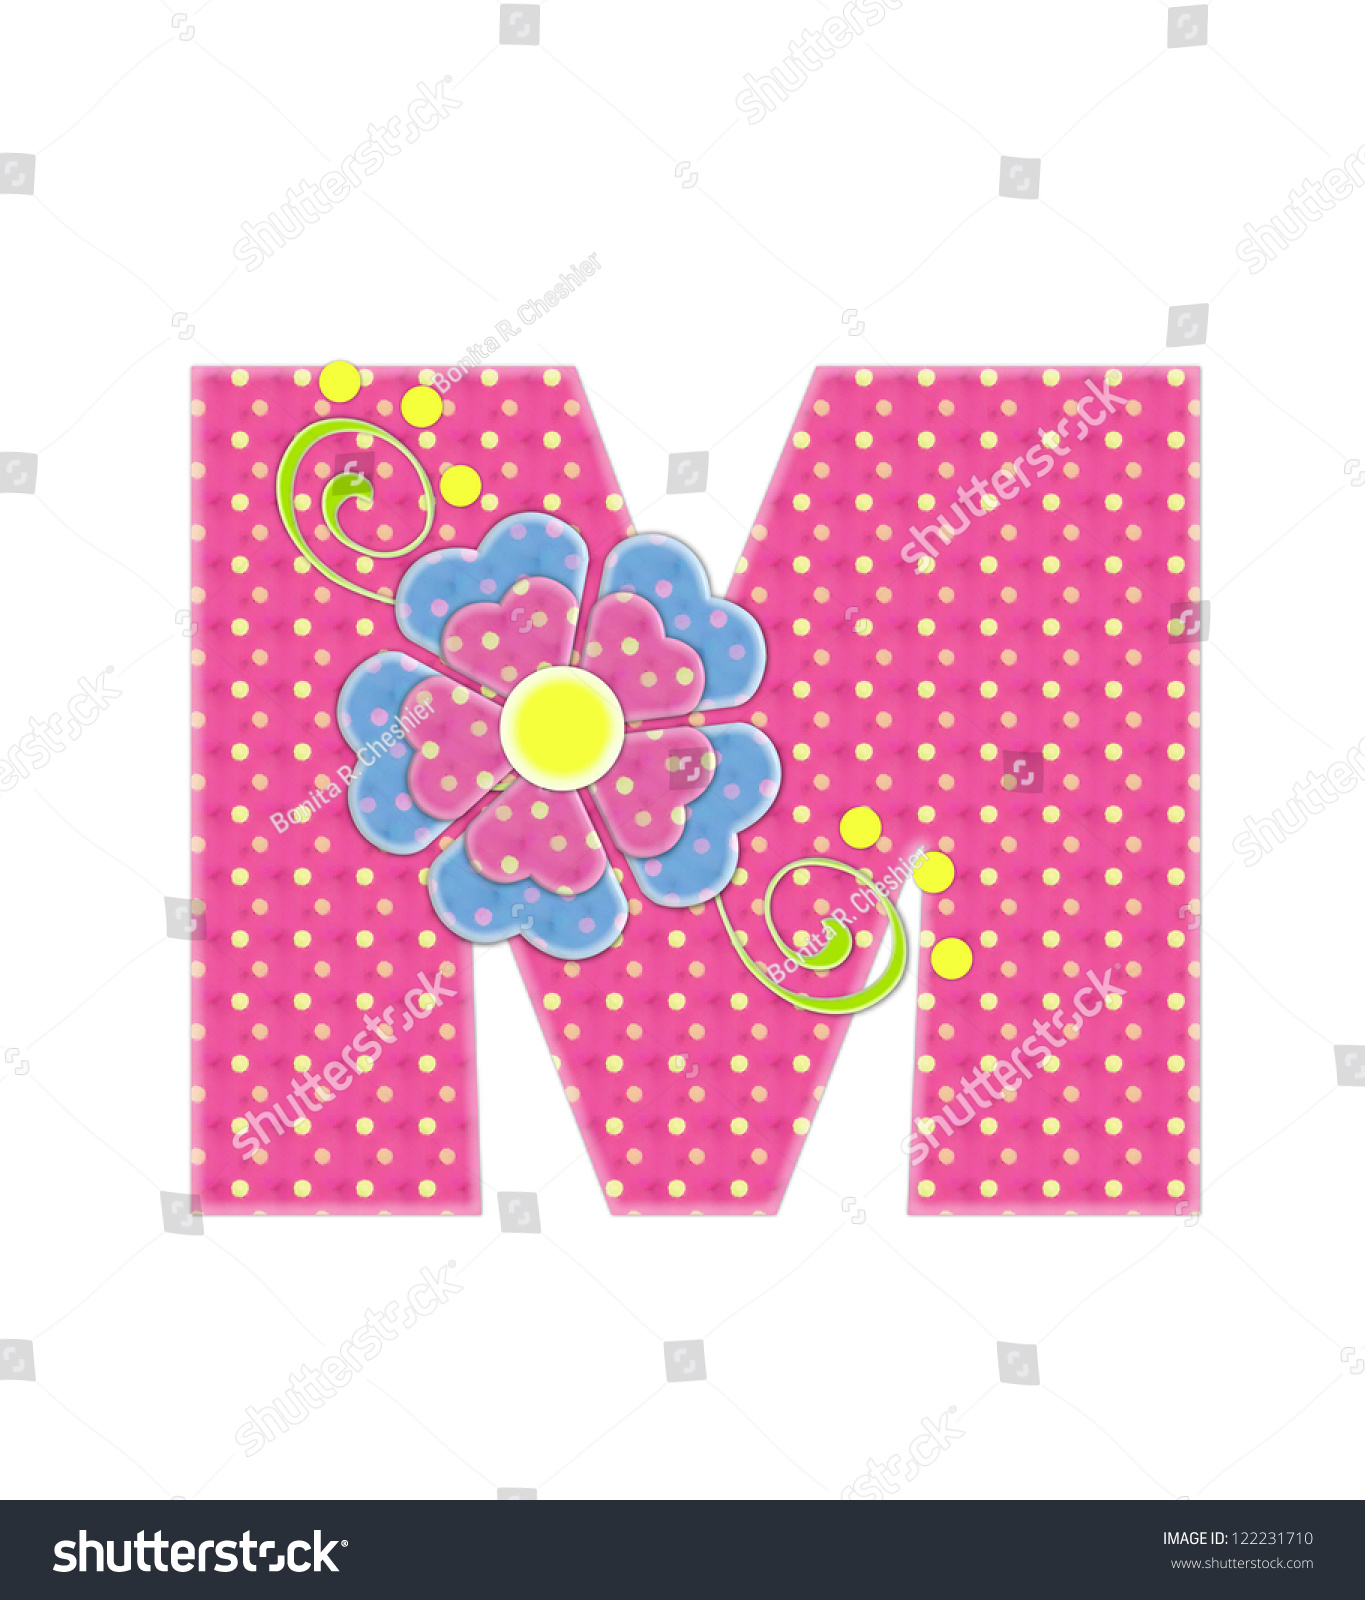 Royalty Free Stock Illustration of Letter M Alphabet Set Bonita Pink ...